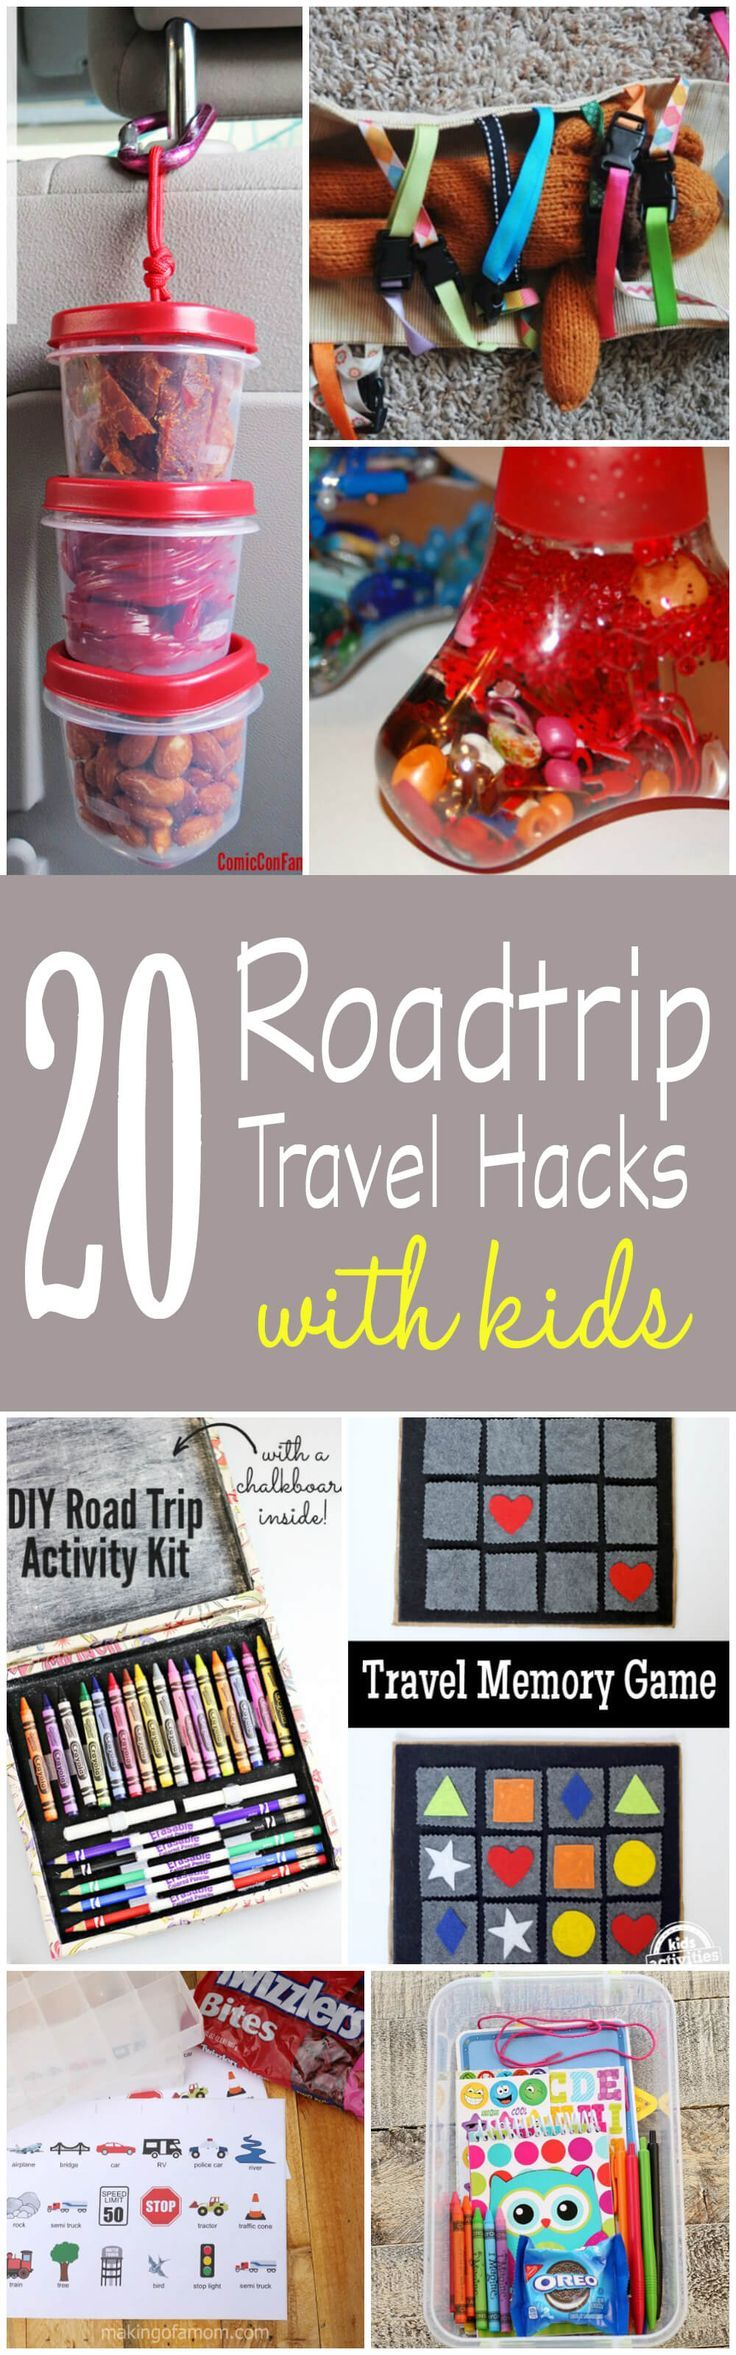 best 20 travel with kids ideas on pinterest kids car games